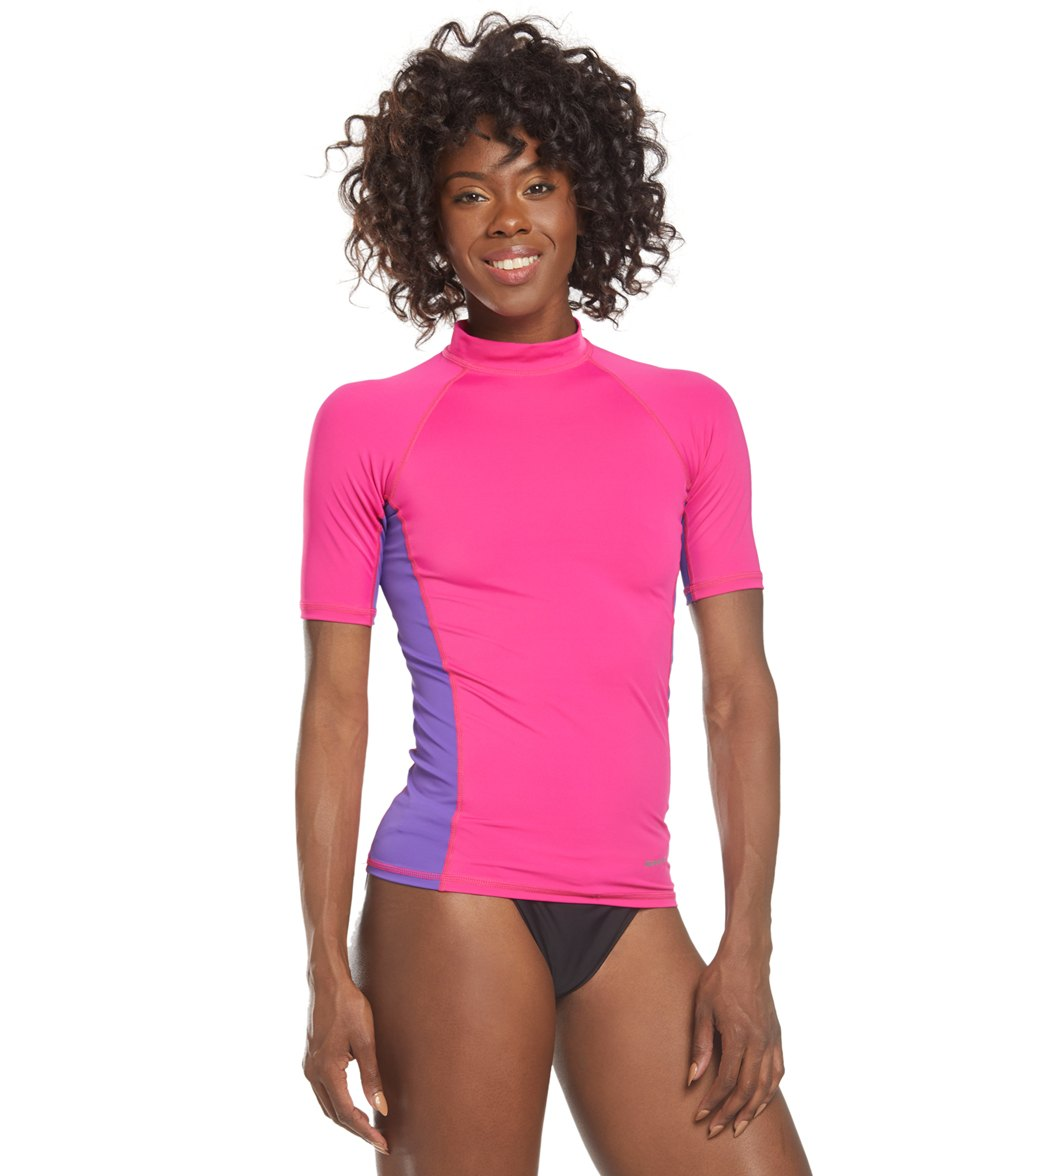 5c72fe60c1912 Women's Sun Protective Clothing at SwimOutlet.com